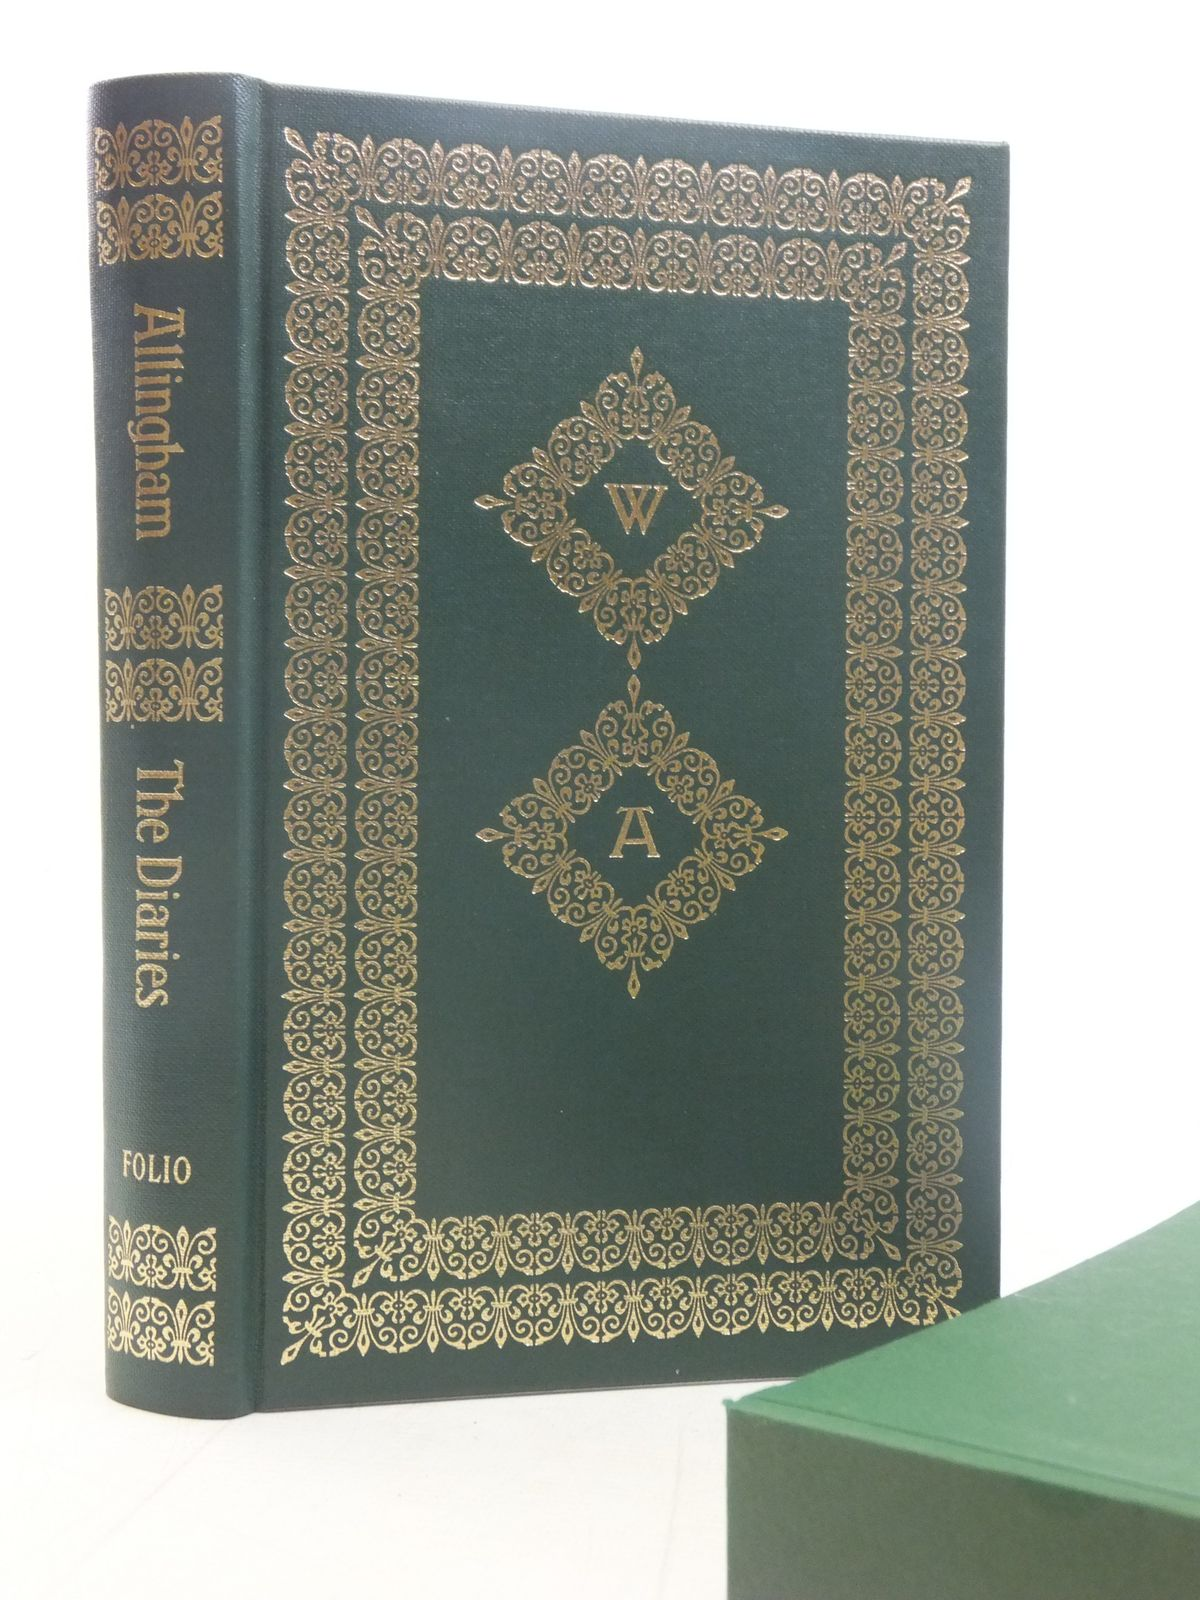 Photo of THE DIARIES written by Allingham, William published by Folio Society (STOCK CODE: 1607190)  for sale by Stella & Rose's Books